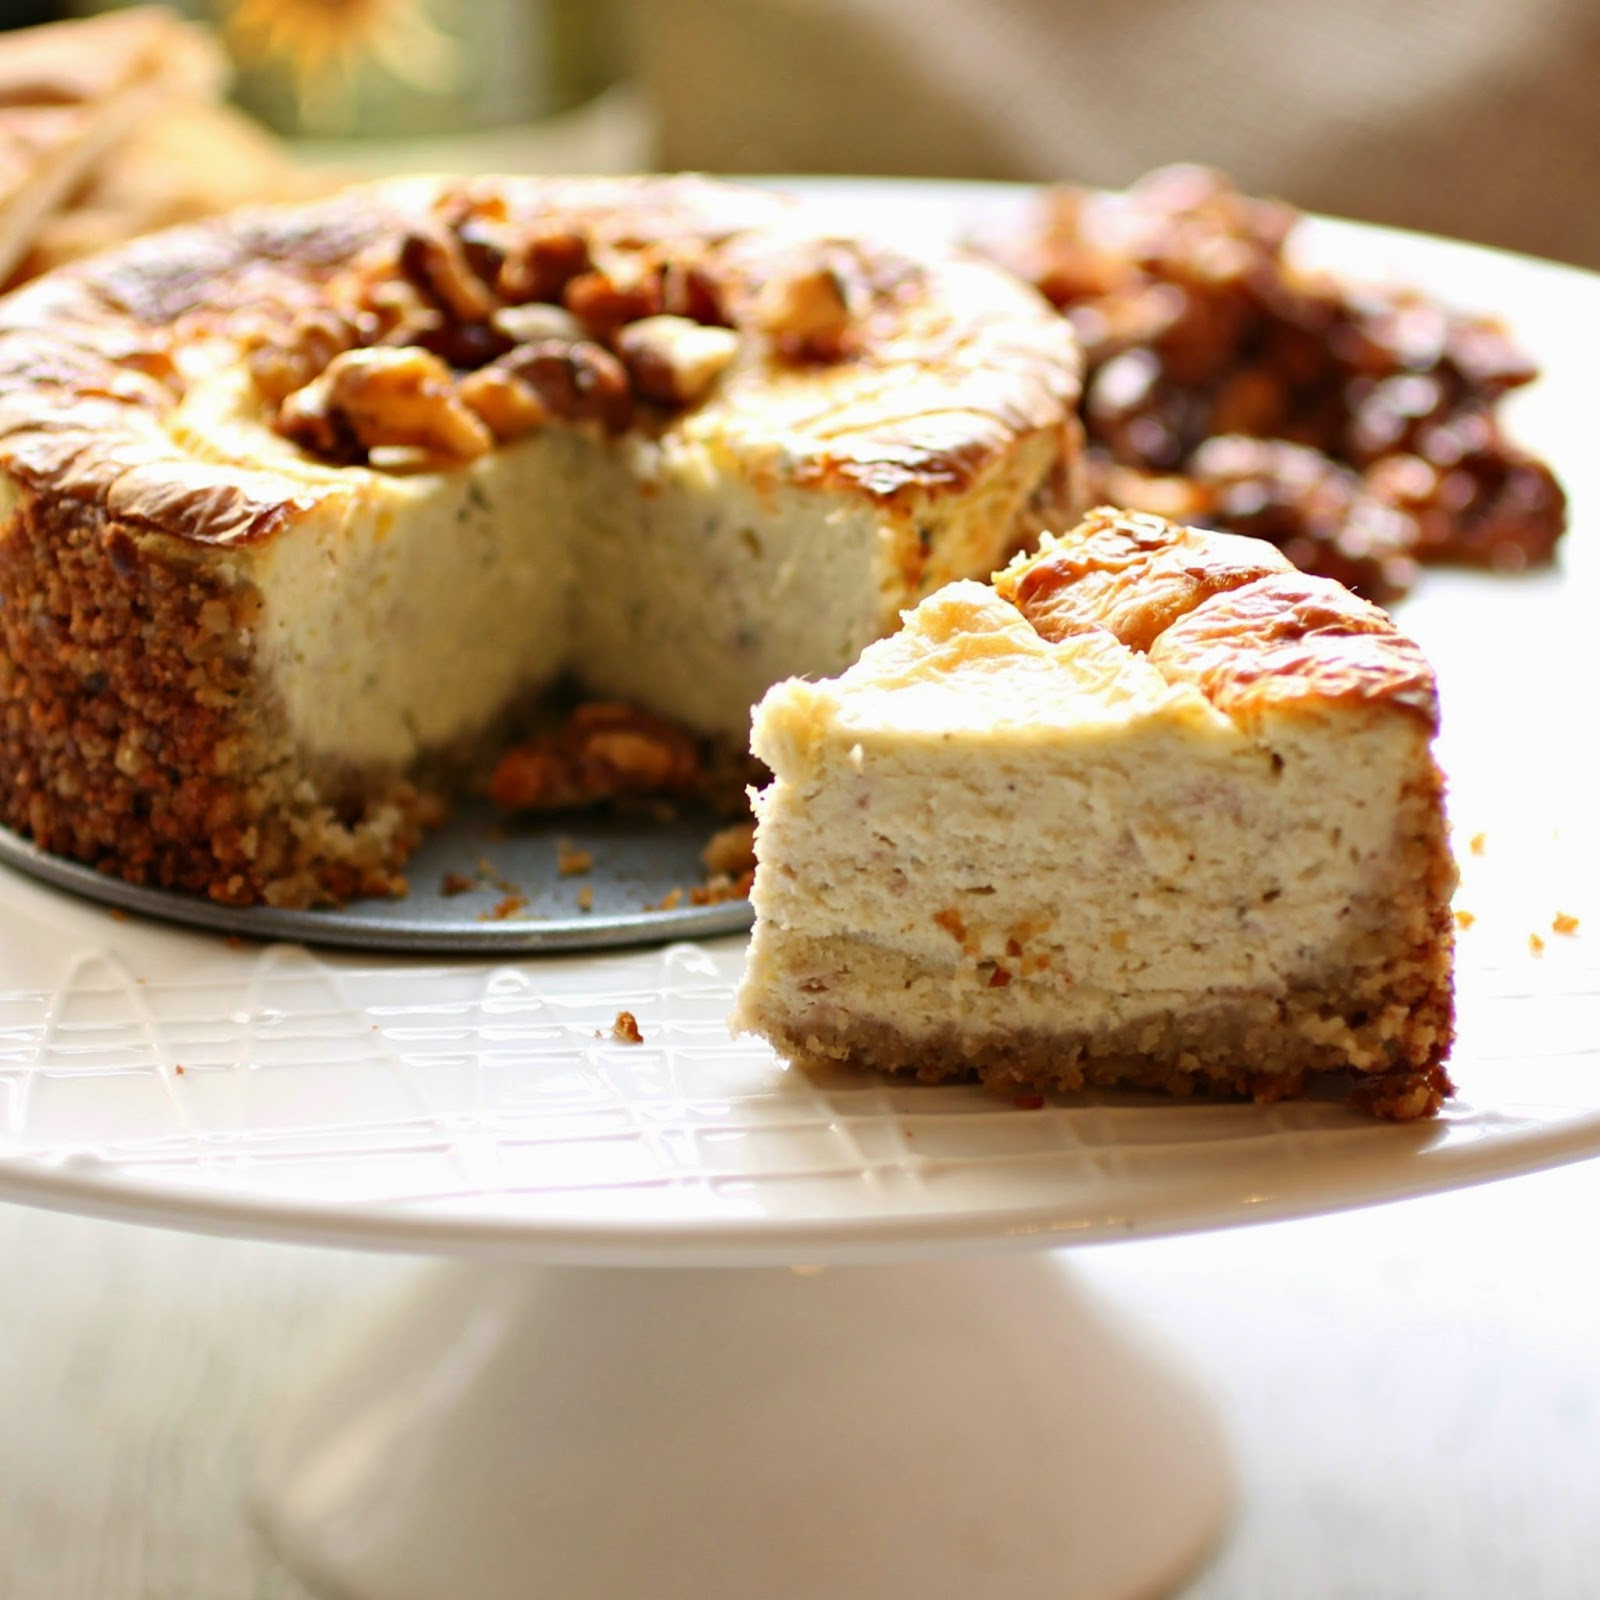 Savory Cheesecake with Honeyed Walnuts